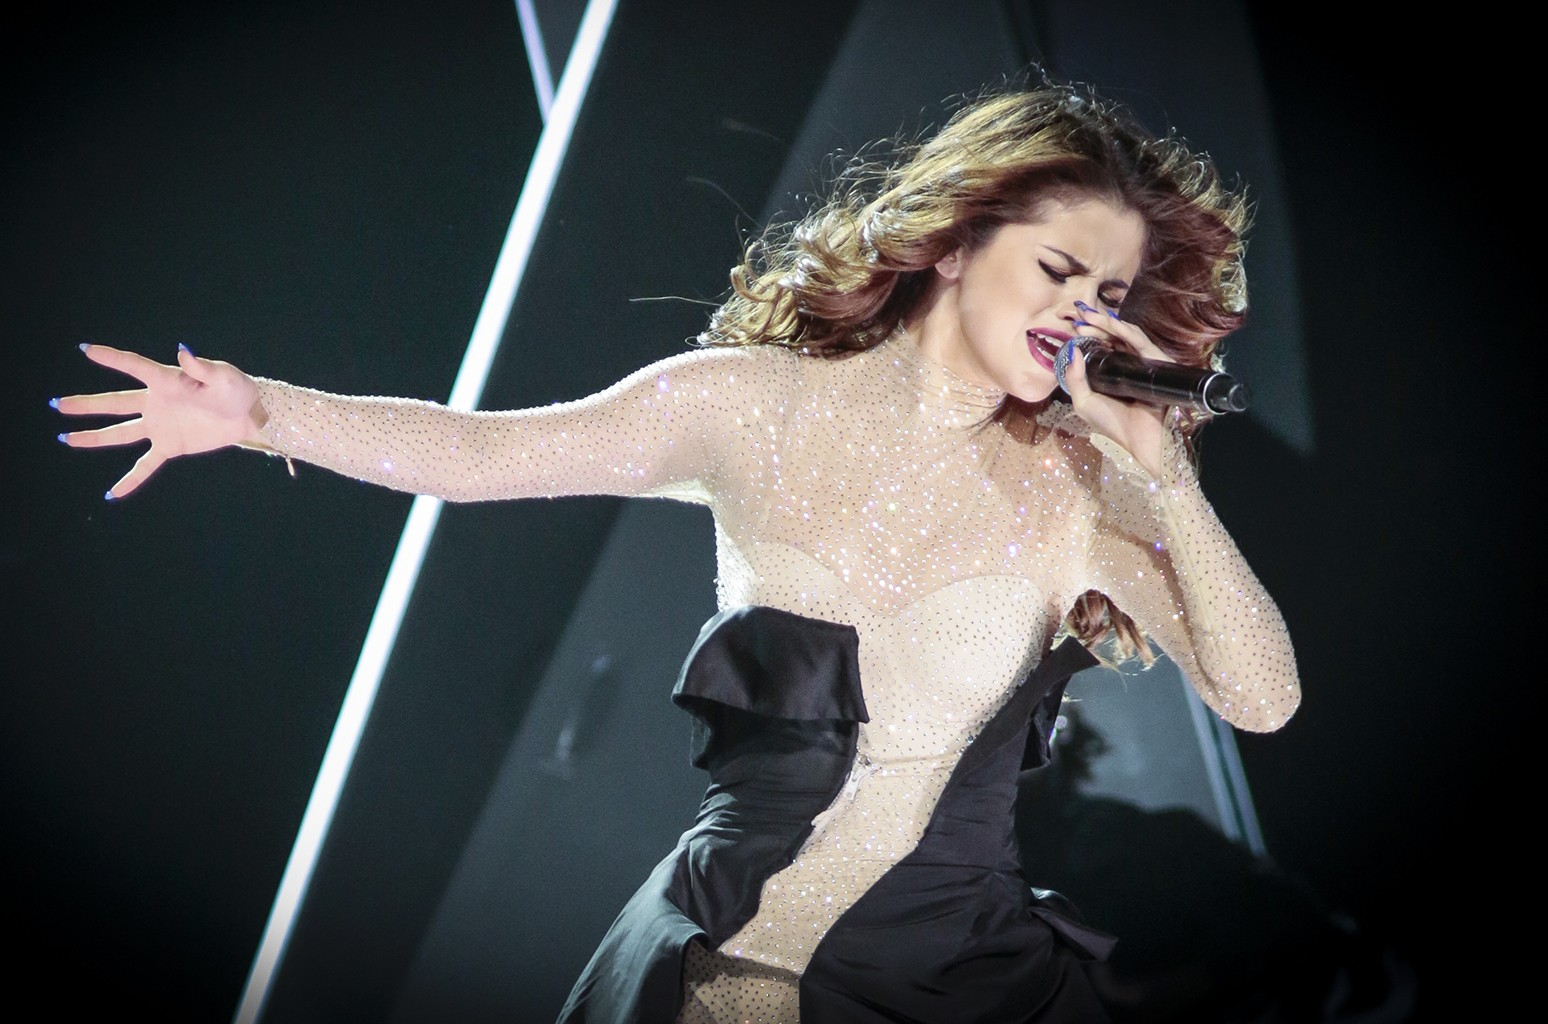 Selena Gomez performs onstage during her Revival Tour